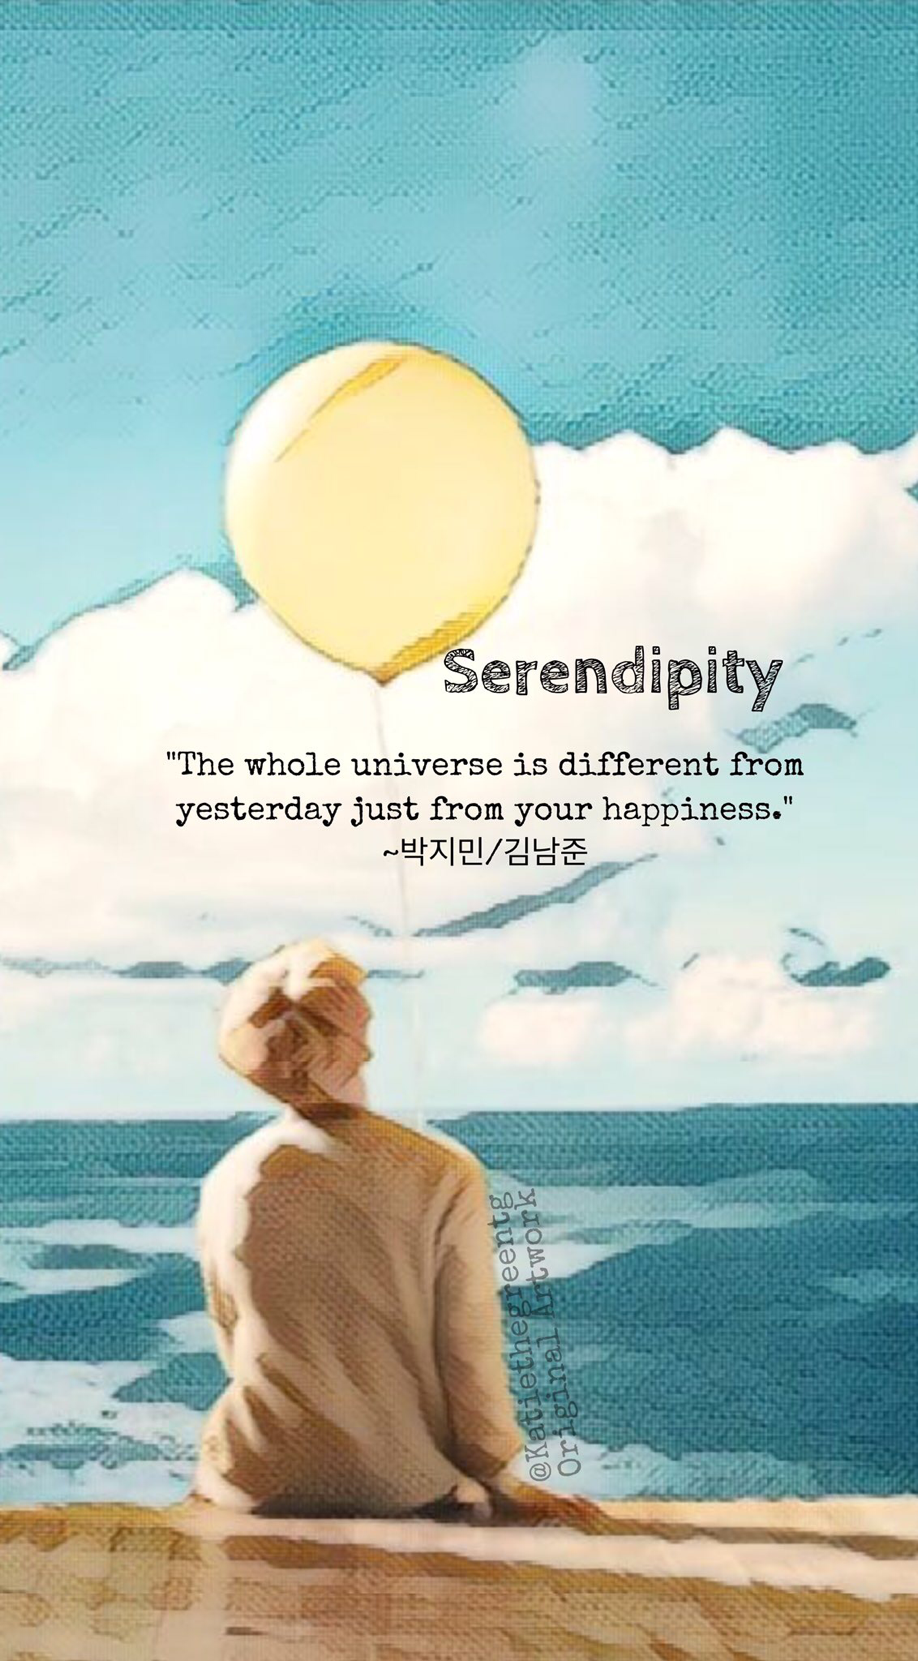 Love Yourself Wallpapers : Bts wallpaper serendipity Jimin her loveyourself love ...